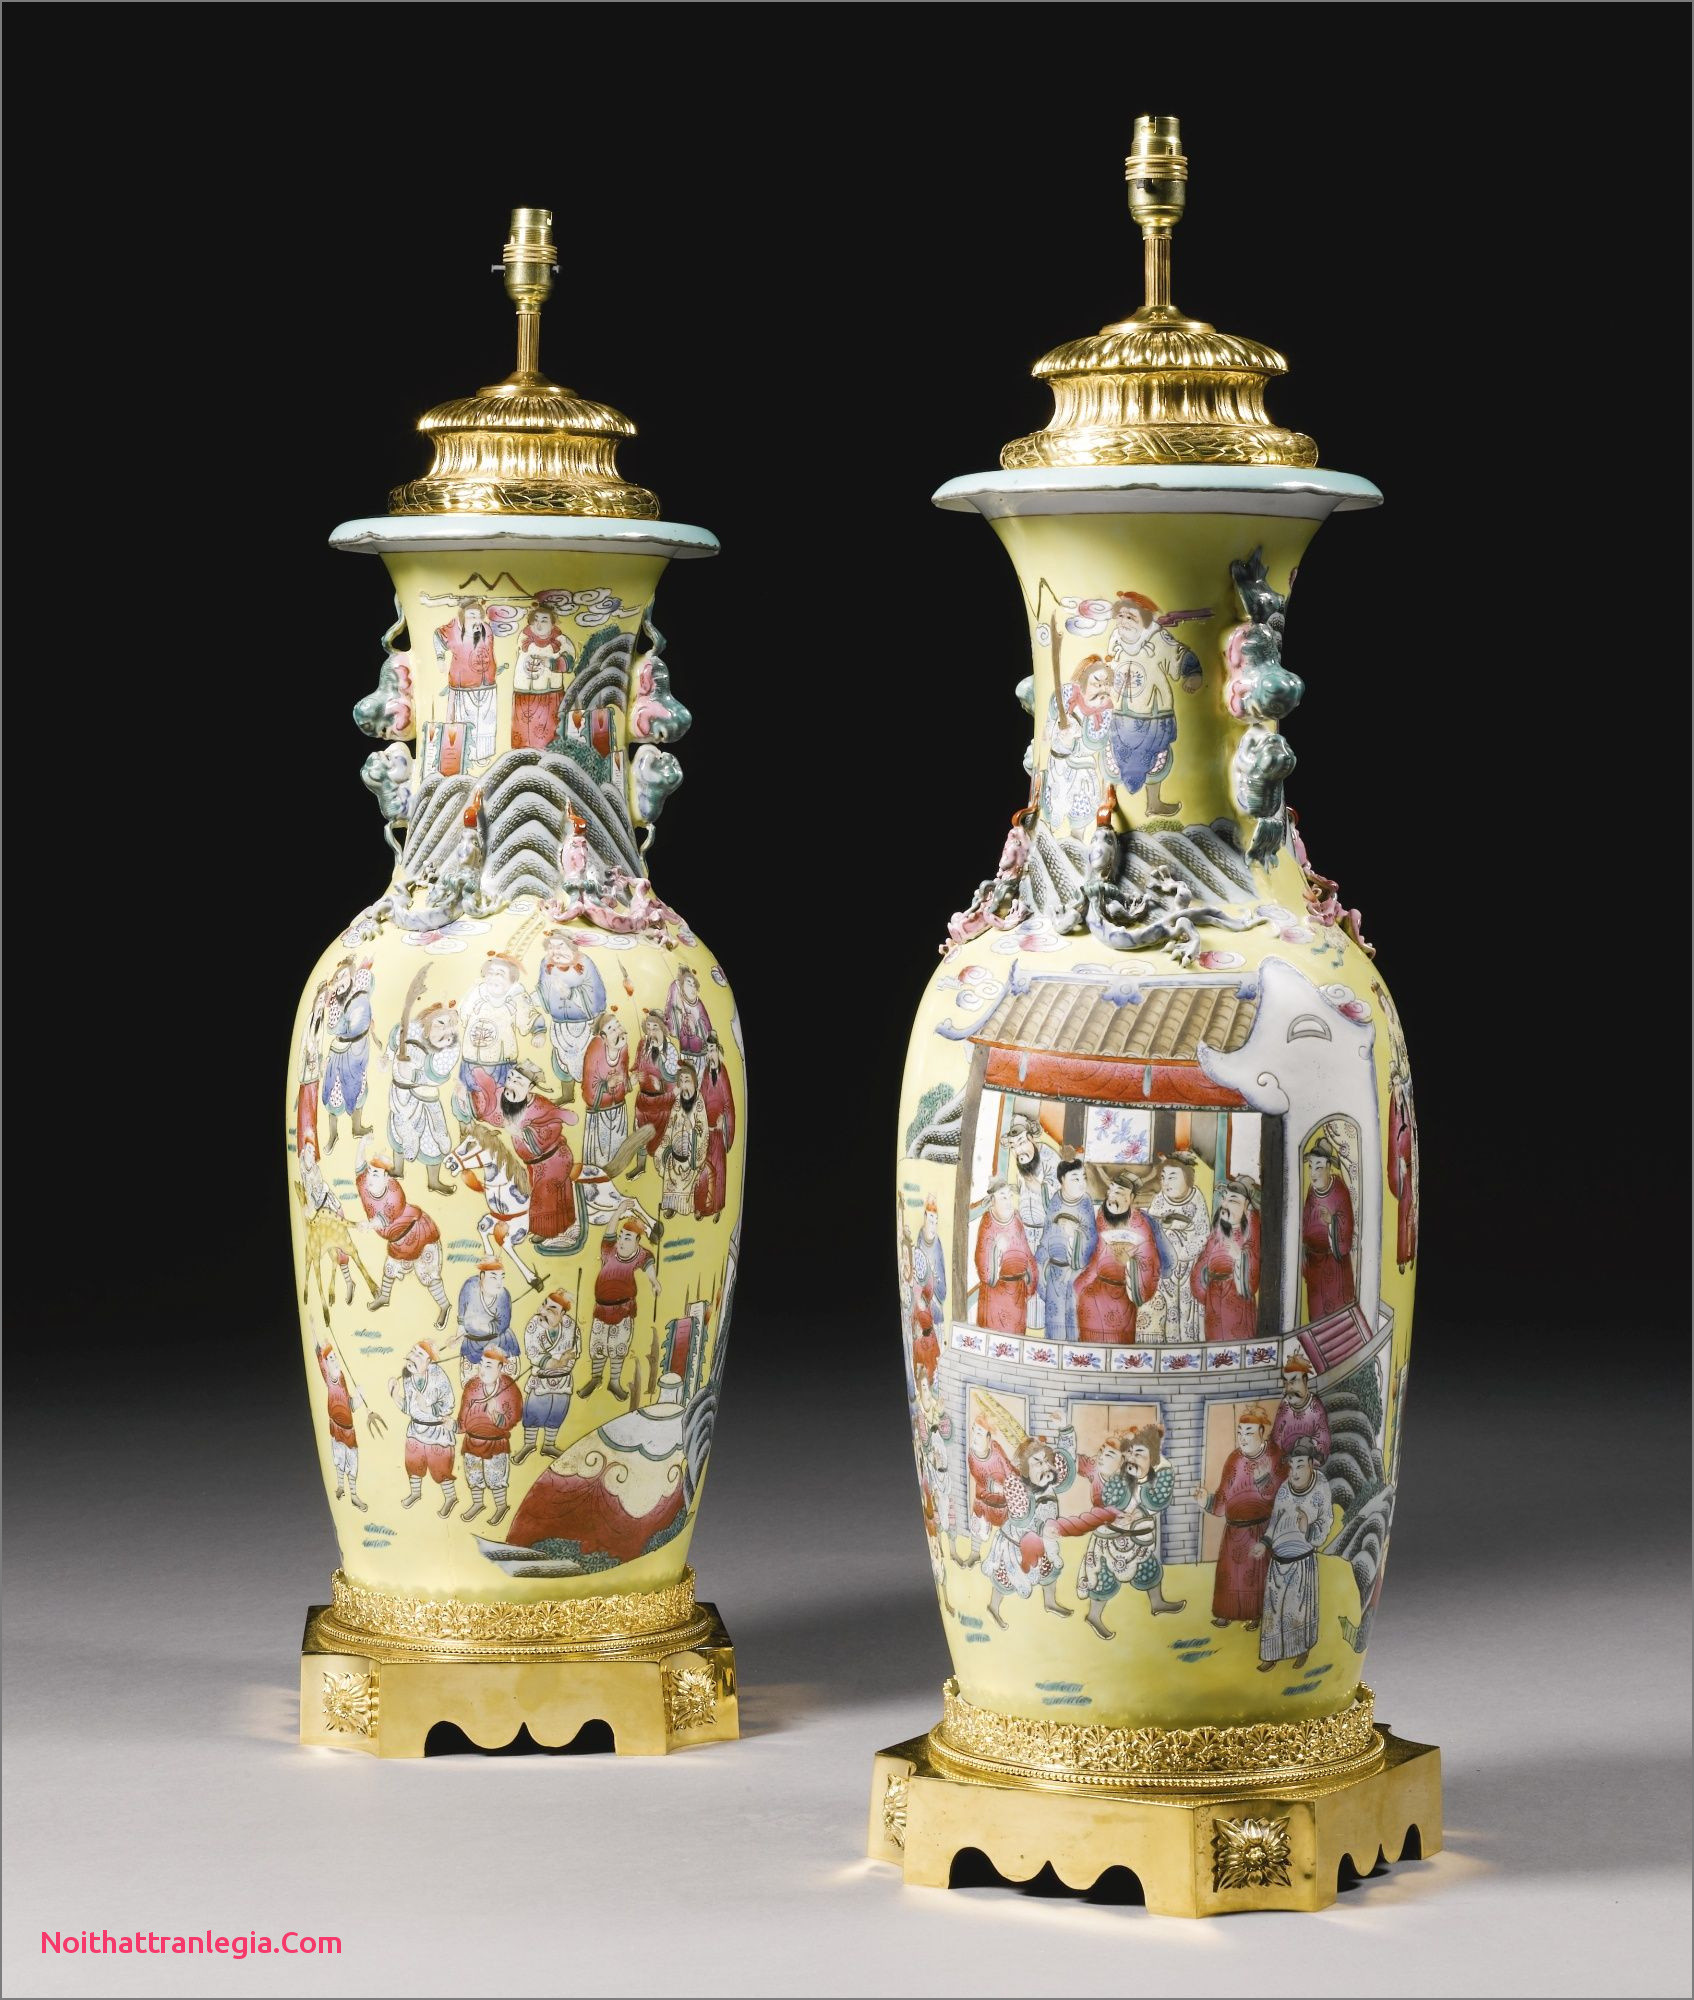 Black oriental Vase Of 20 Chinese Antique Vase Noithattranlegia Vases Design Throughout A Pair Of Chinese Porcelain Vases sotheby S